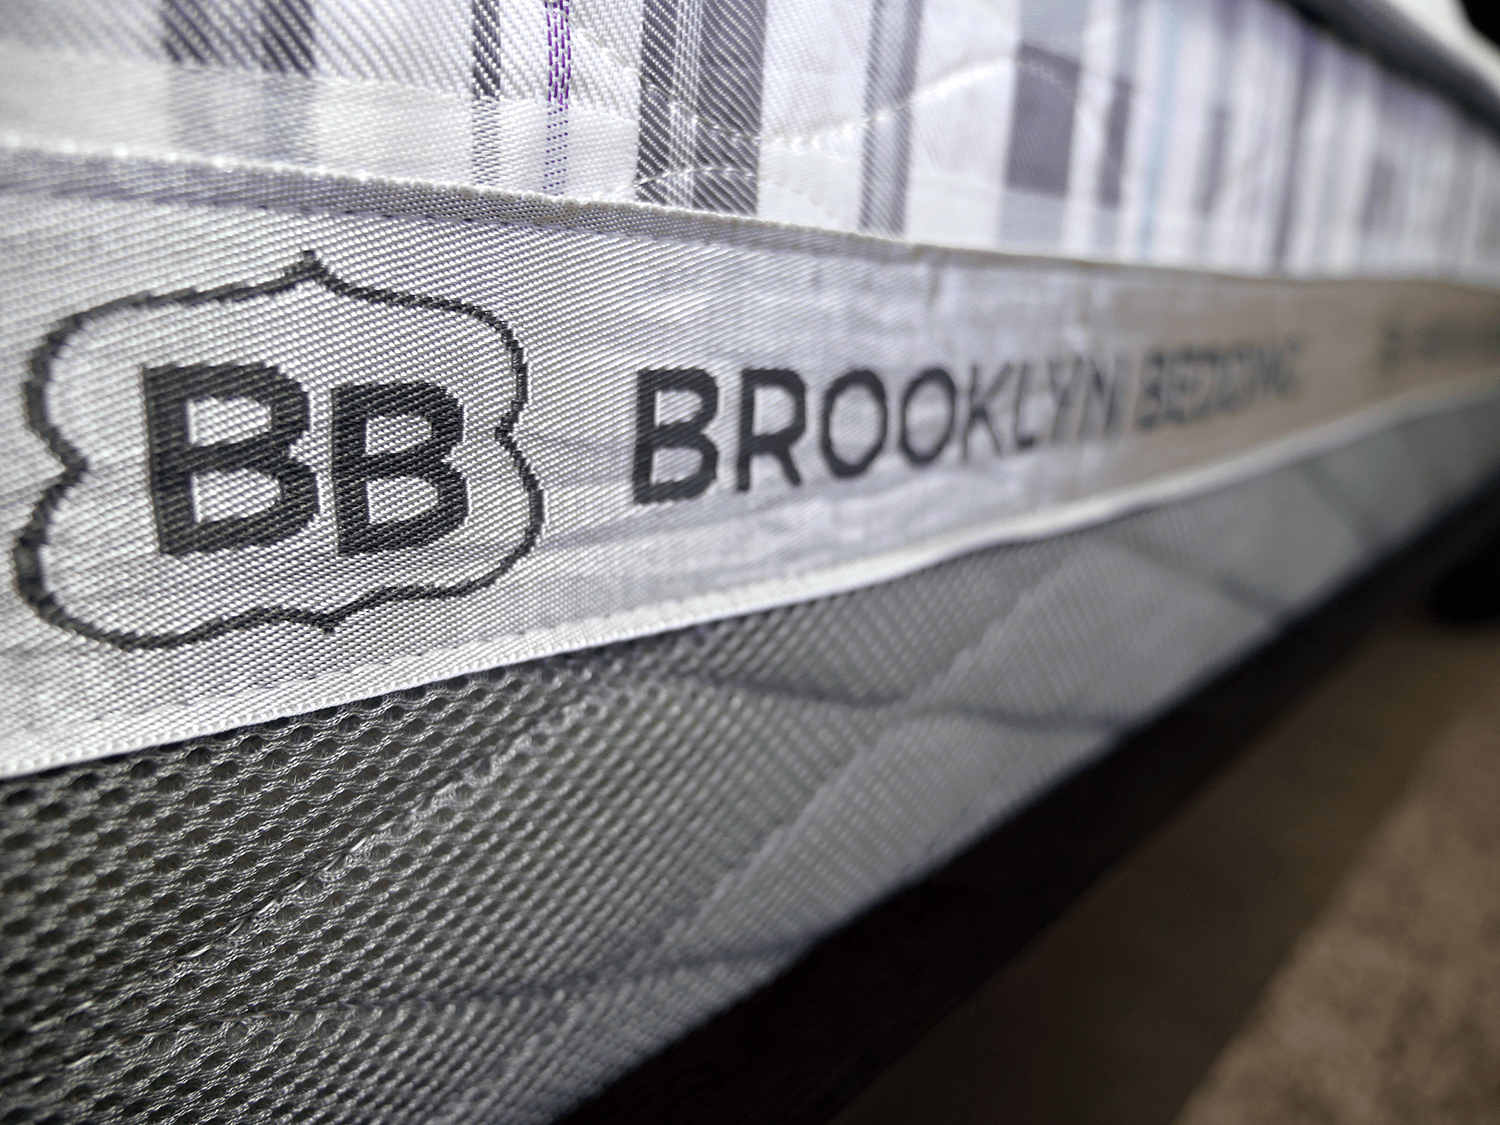 Close up shot of the Brooklyn Bedding logo